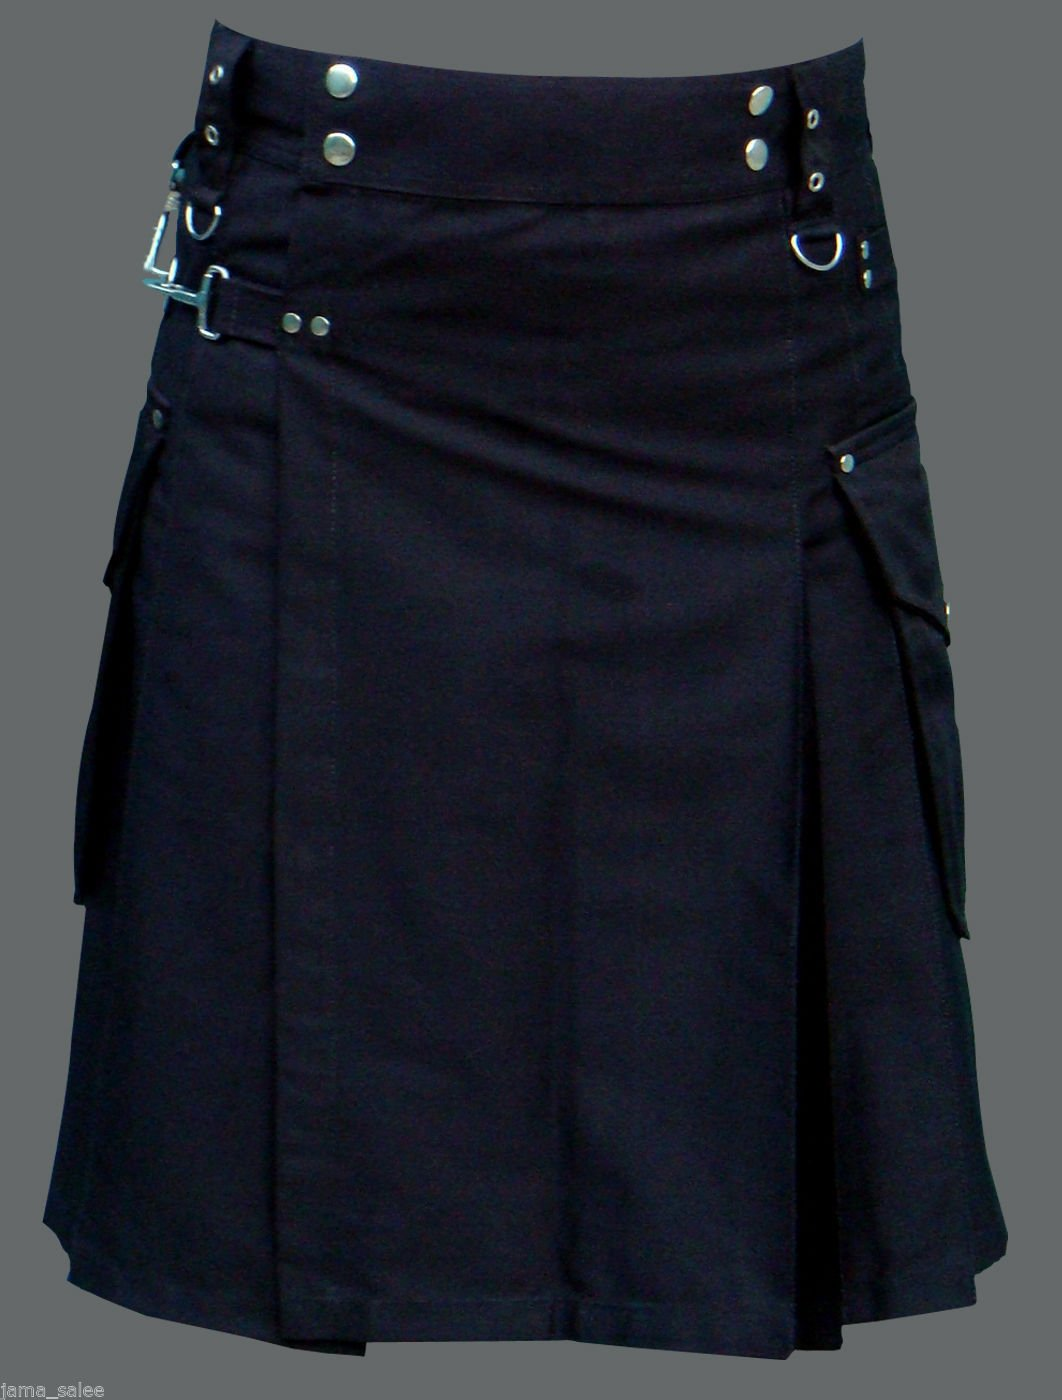 Deluxe Black Cotton Kilt Handmade Utility Gothic Modern Kilt with Cargo Pockets Waist Size 34 to Fit